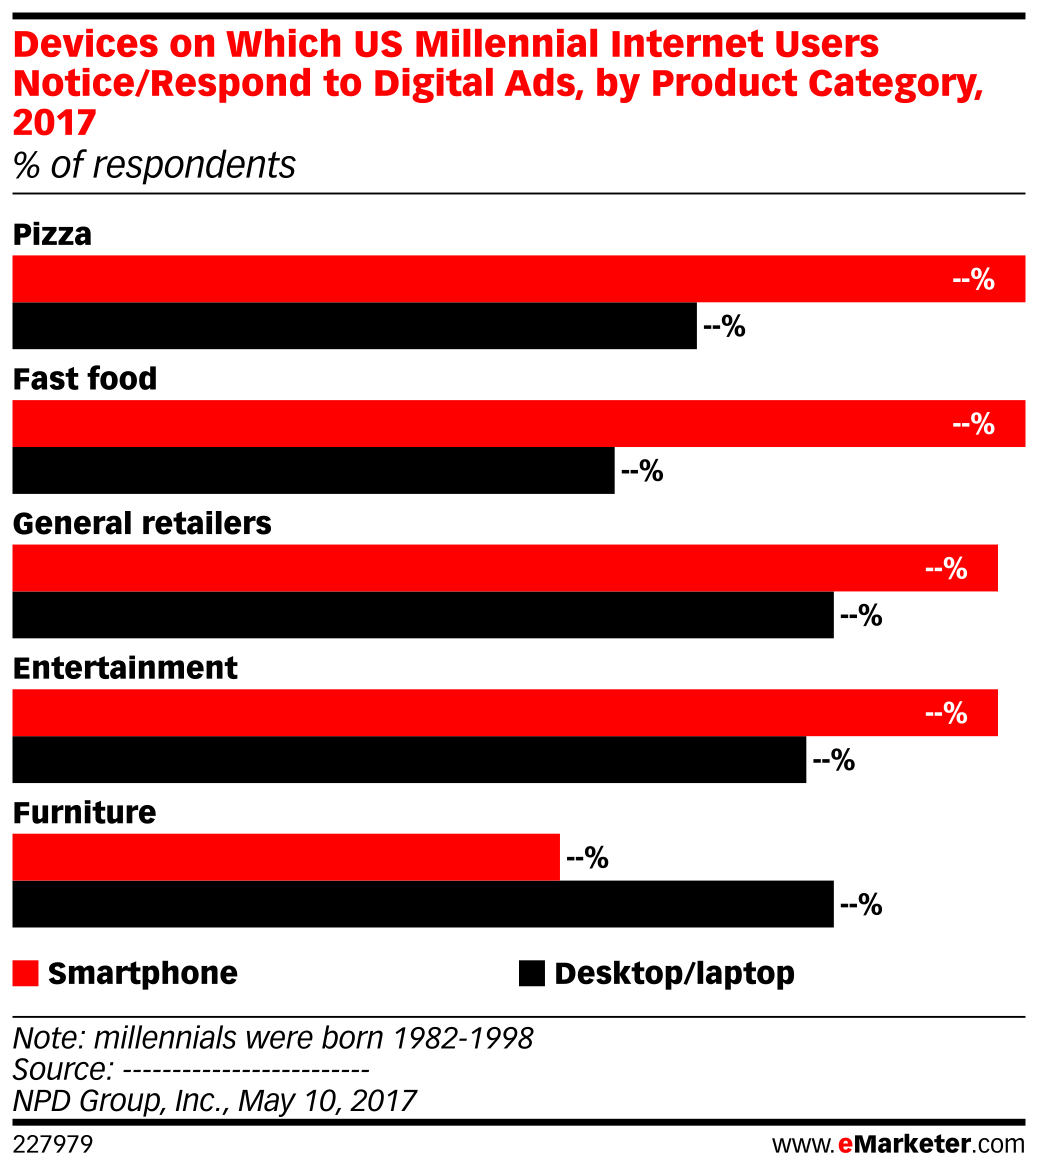 Devices on Which US Millennial Internet Users Notice/Respond to Digital Ads, by Product Category, 2017 (% of respondents)